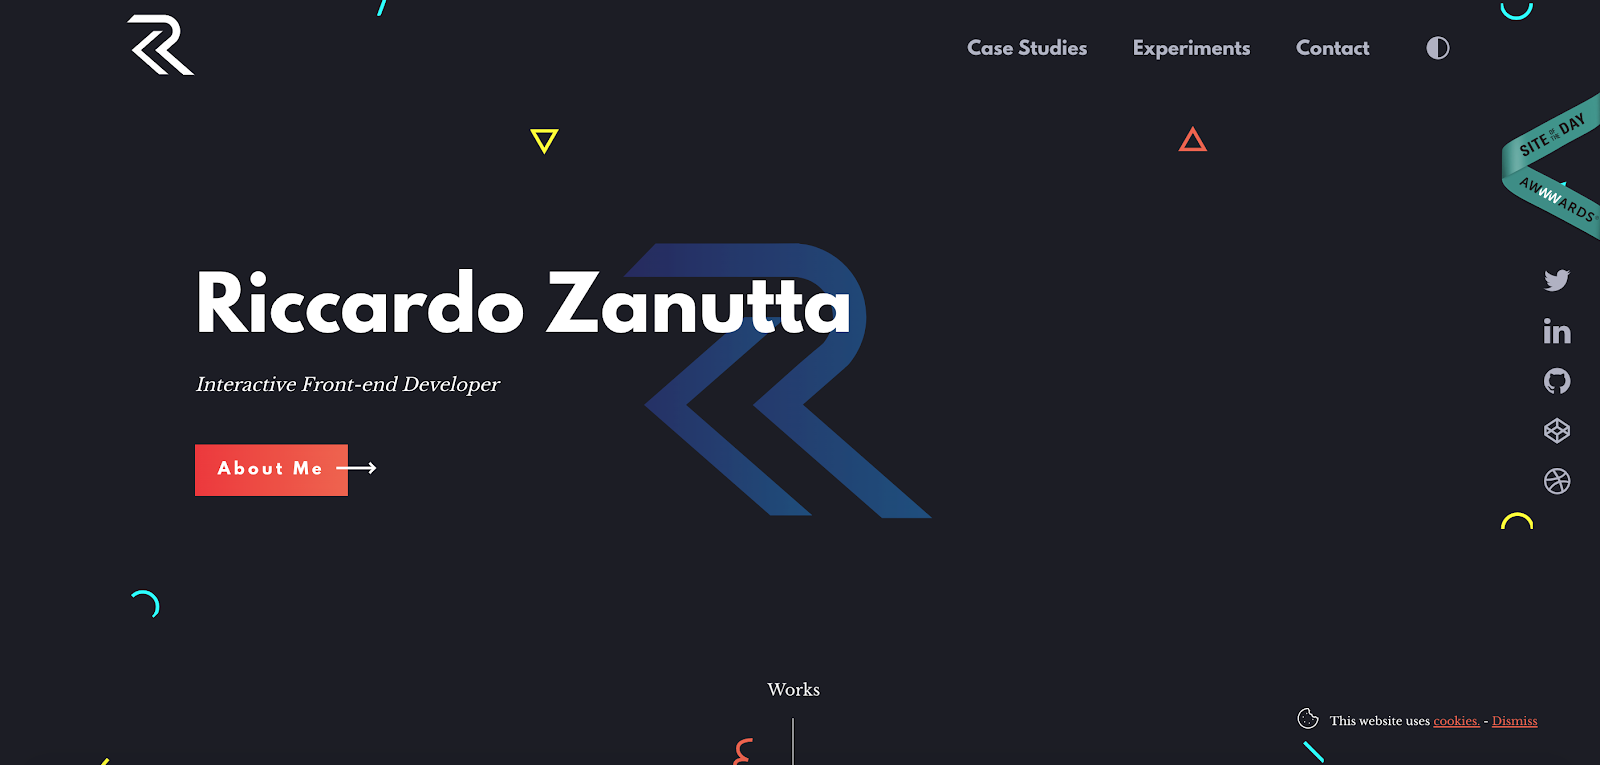 Web Developer Portfolio of Riccardo Zanutta